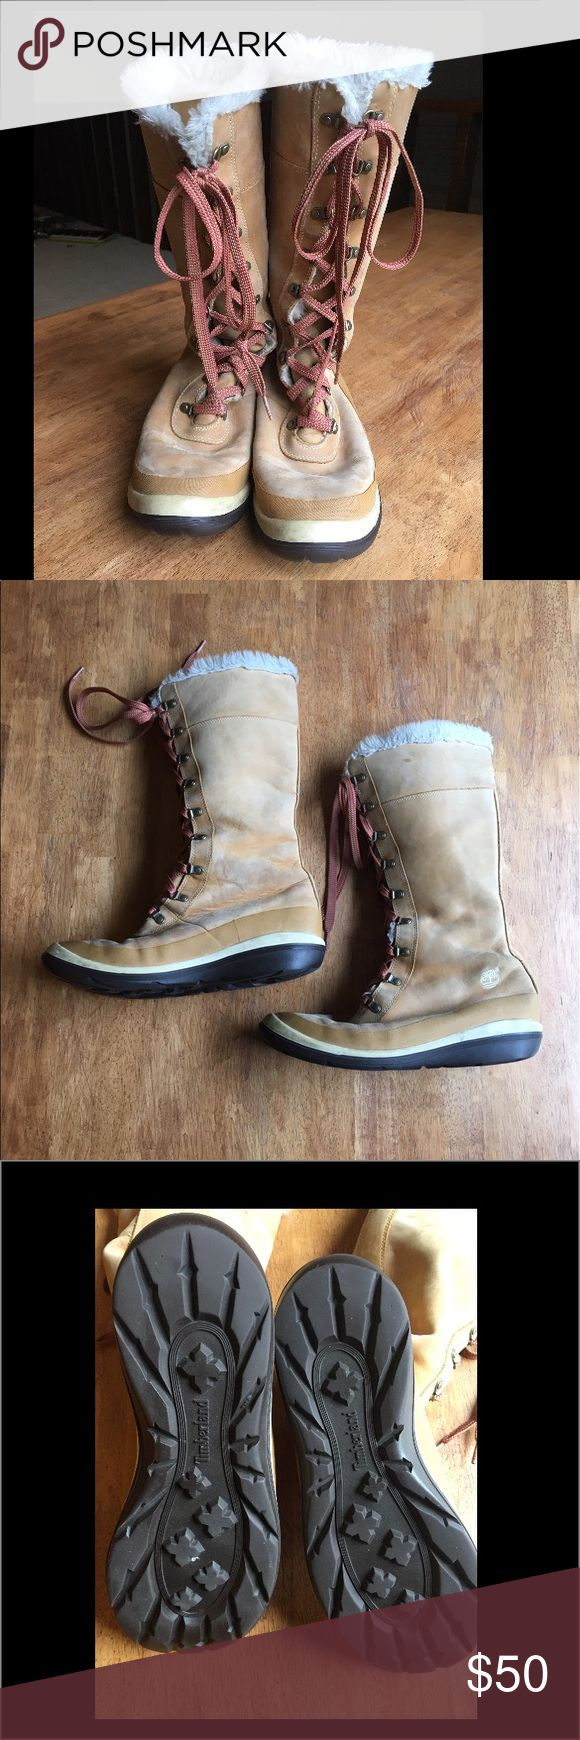 Timberland Winter Lace-up Boots These boots are super warm and crazy awesome!!  They have been worn but are in great condition. Timberland Shoes Lace Up Boots